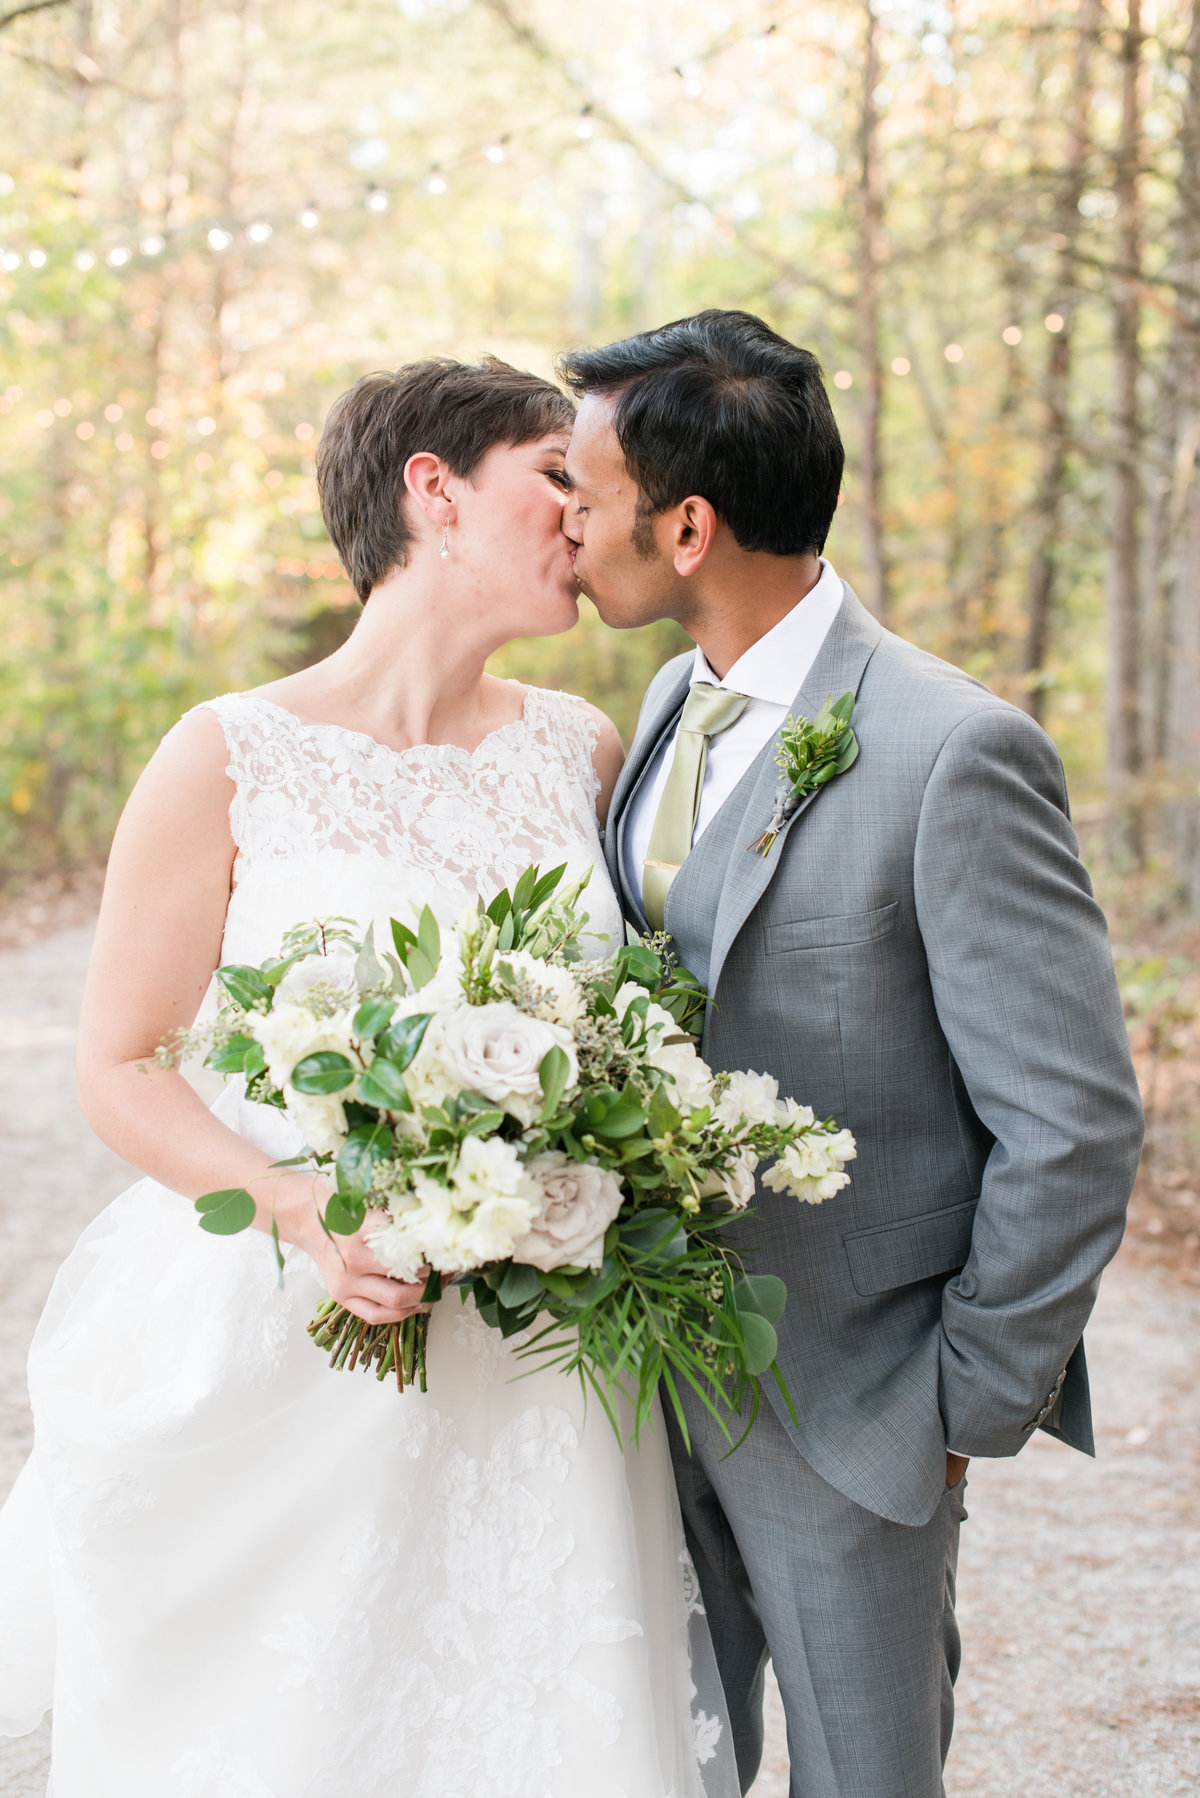 Romantic and Lush Meadows at Walnut Cove Styled Shoot0309